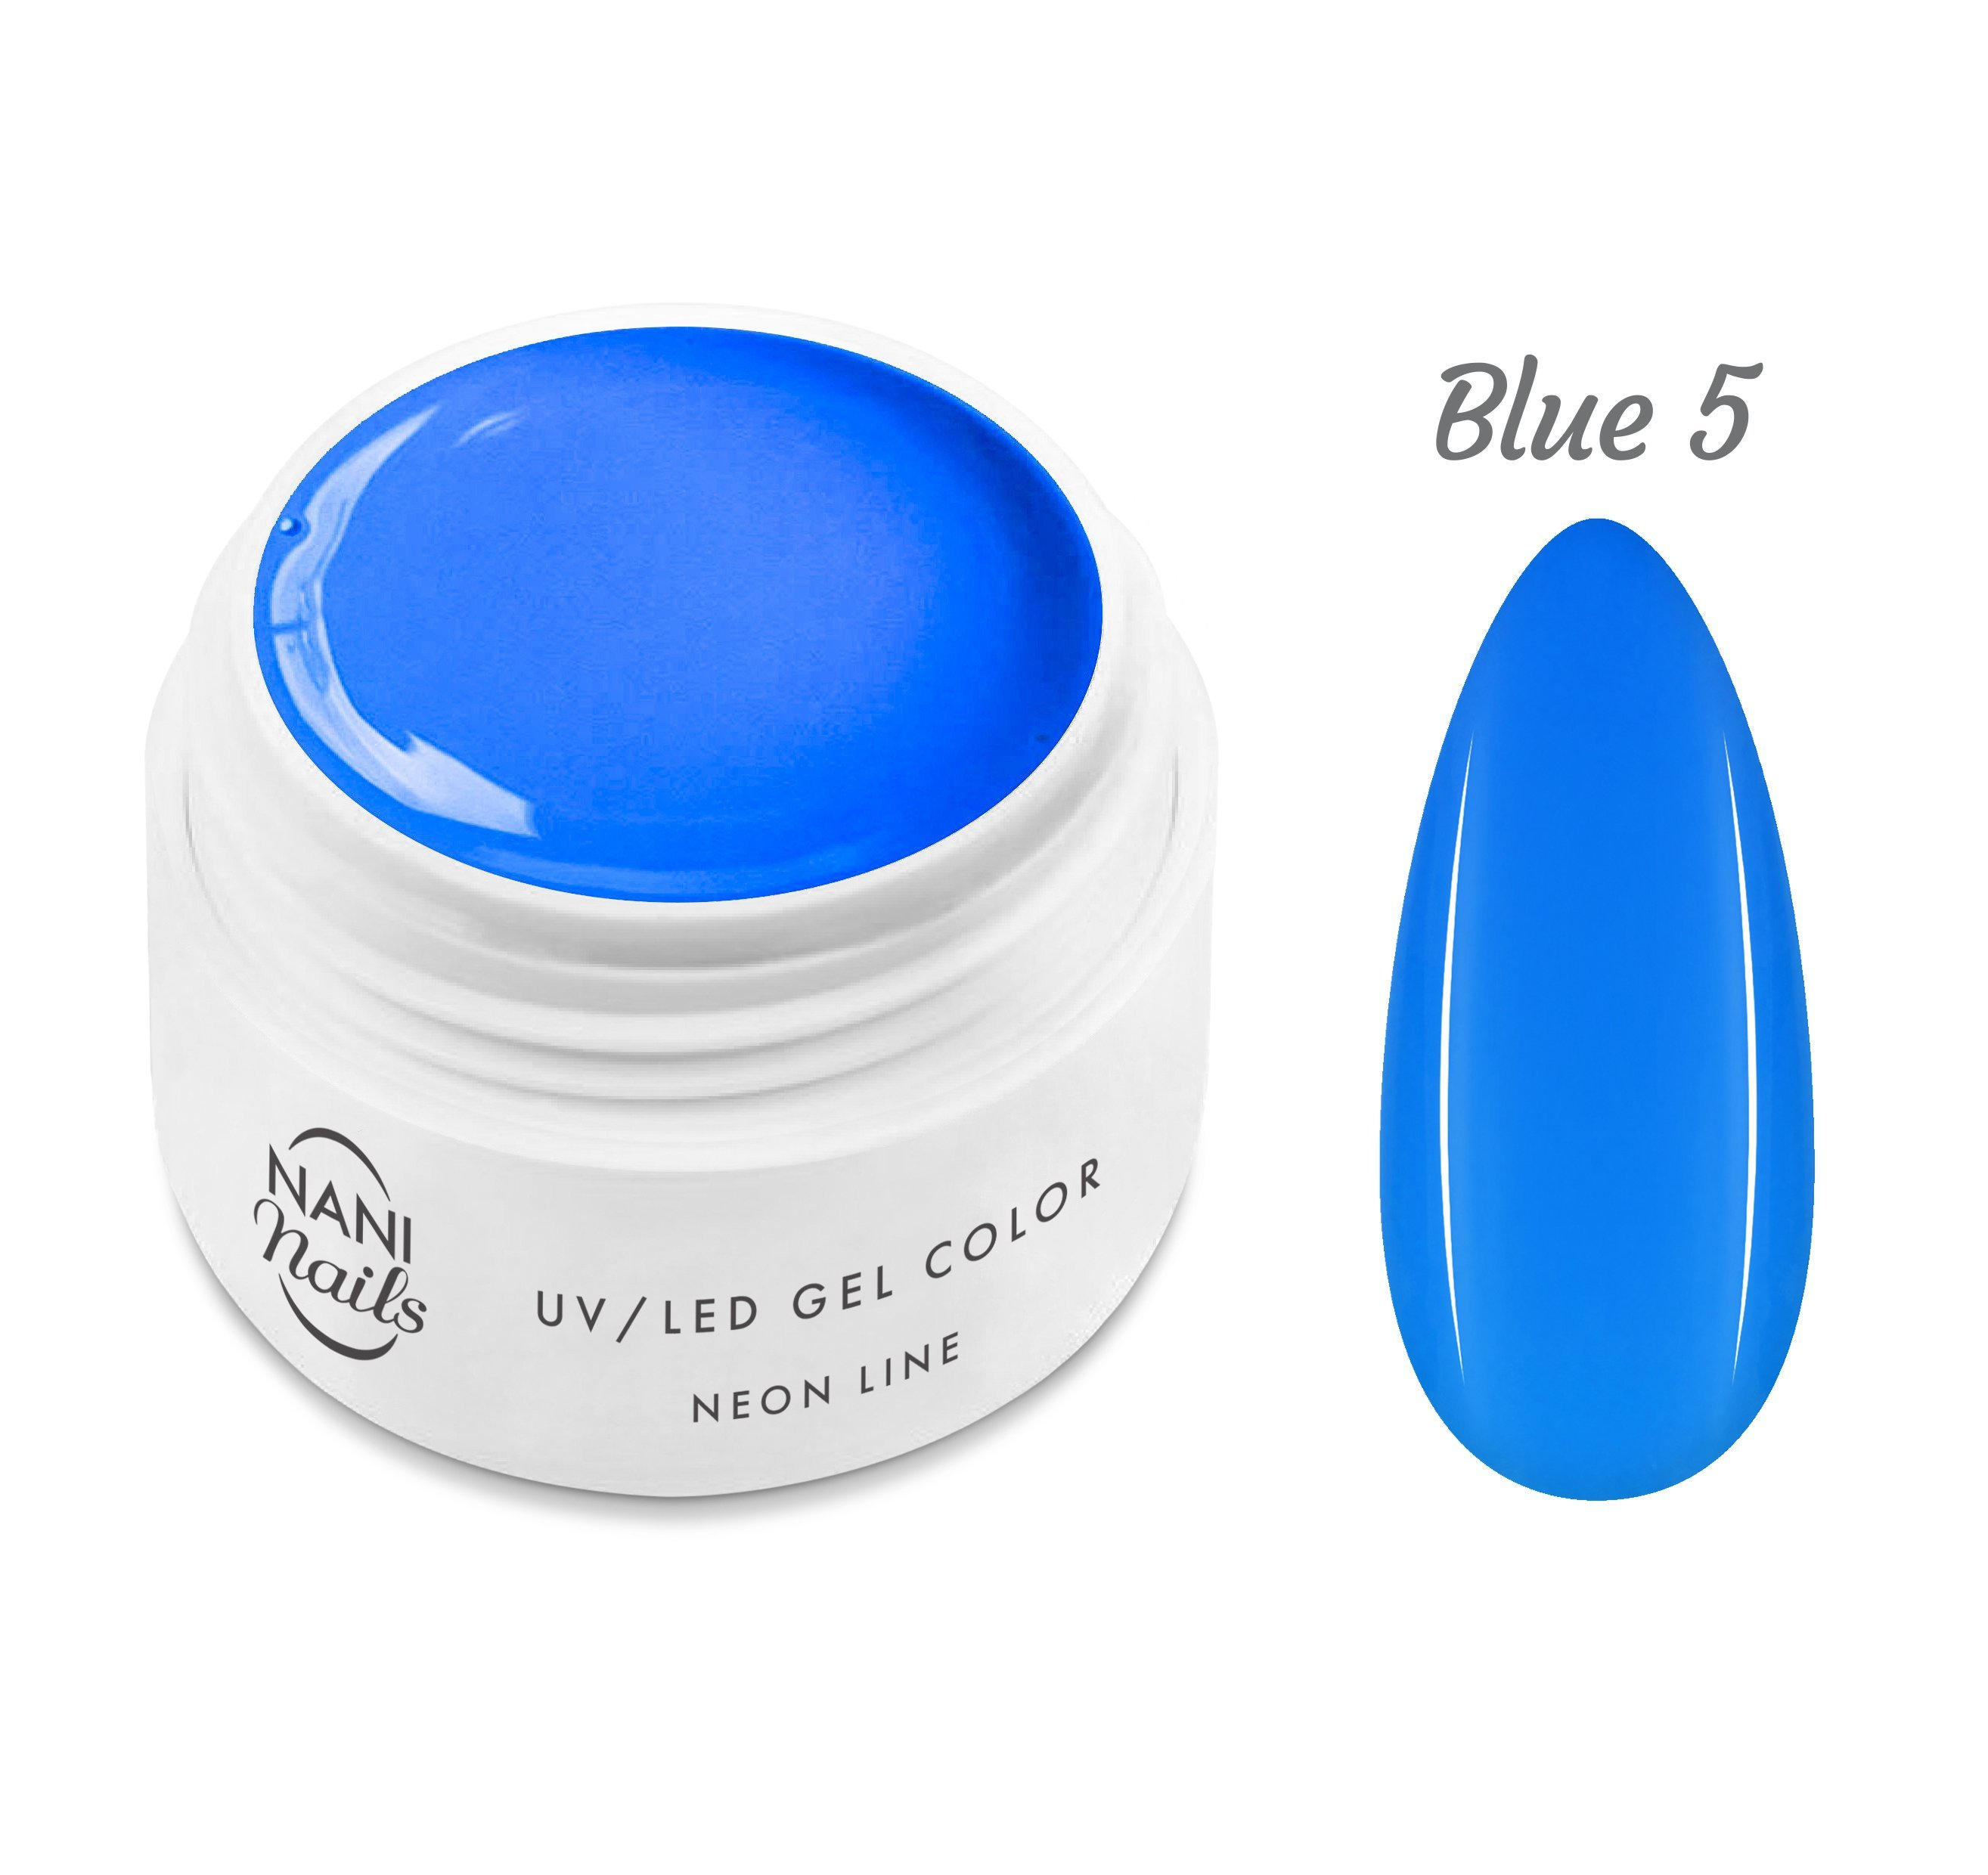 NANI UV gél Neon Line 5 ml - Blue